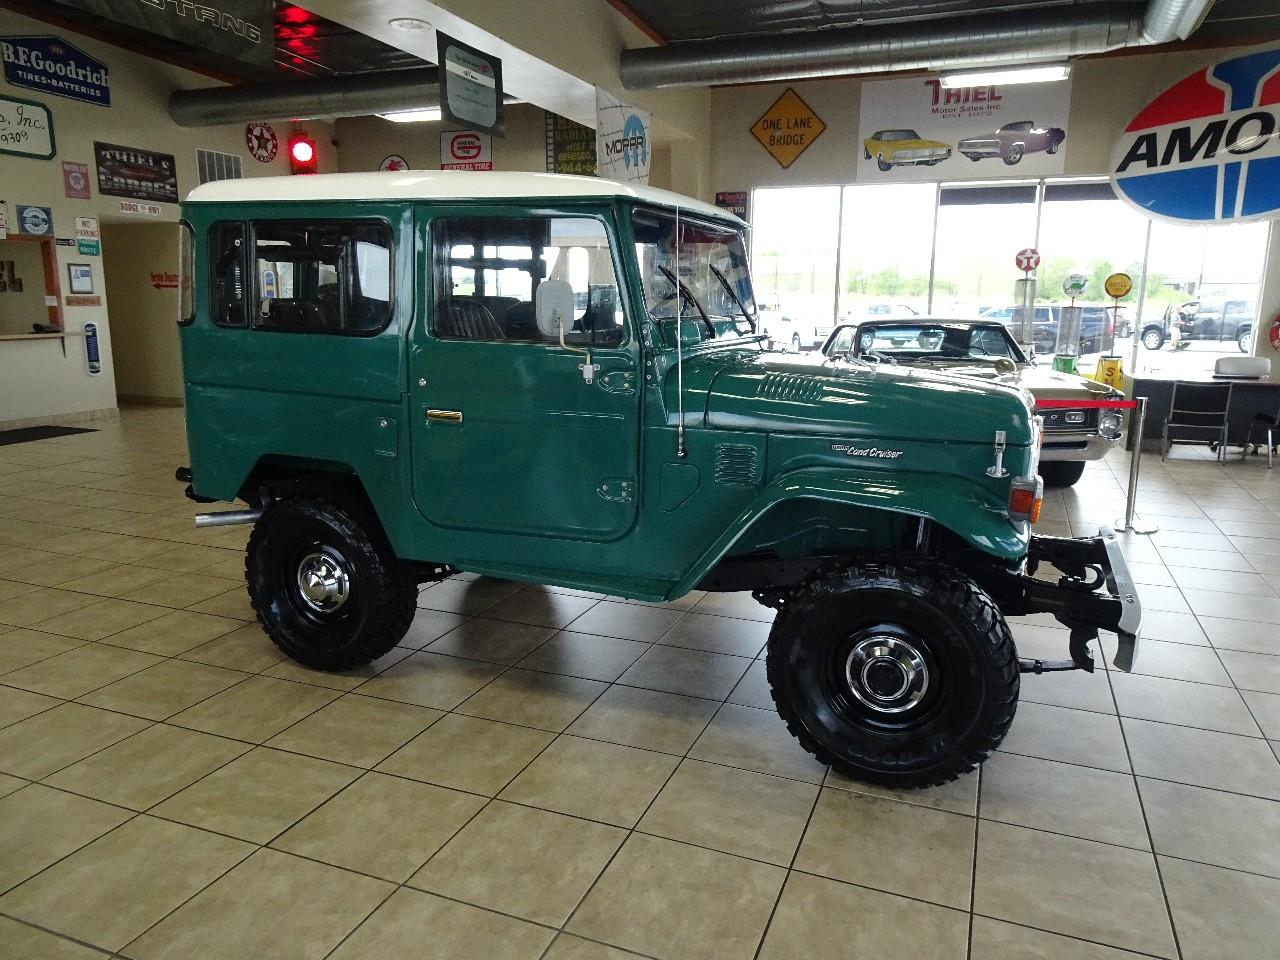 Large Picture of '78 Toyota Land Cruiser FJ40 located in De Witt Iowa - $29,997.00 Offered by Thiel Motor Sales Inc. - QCAV